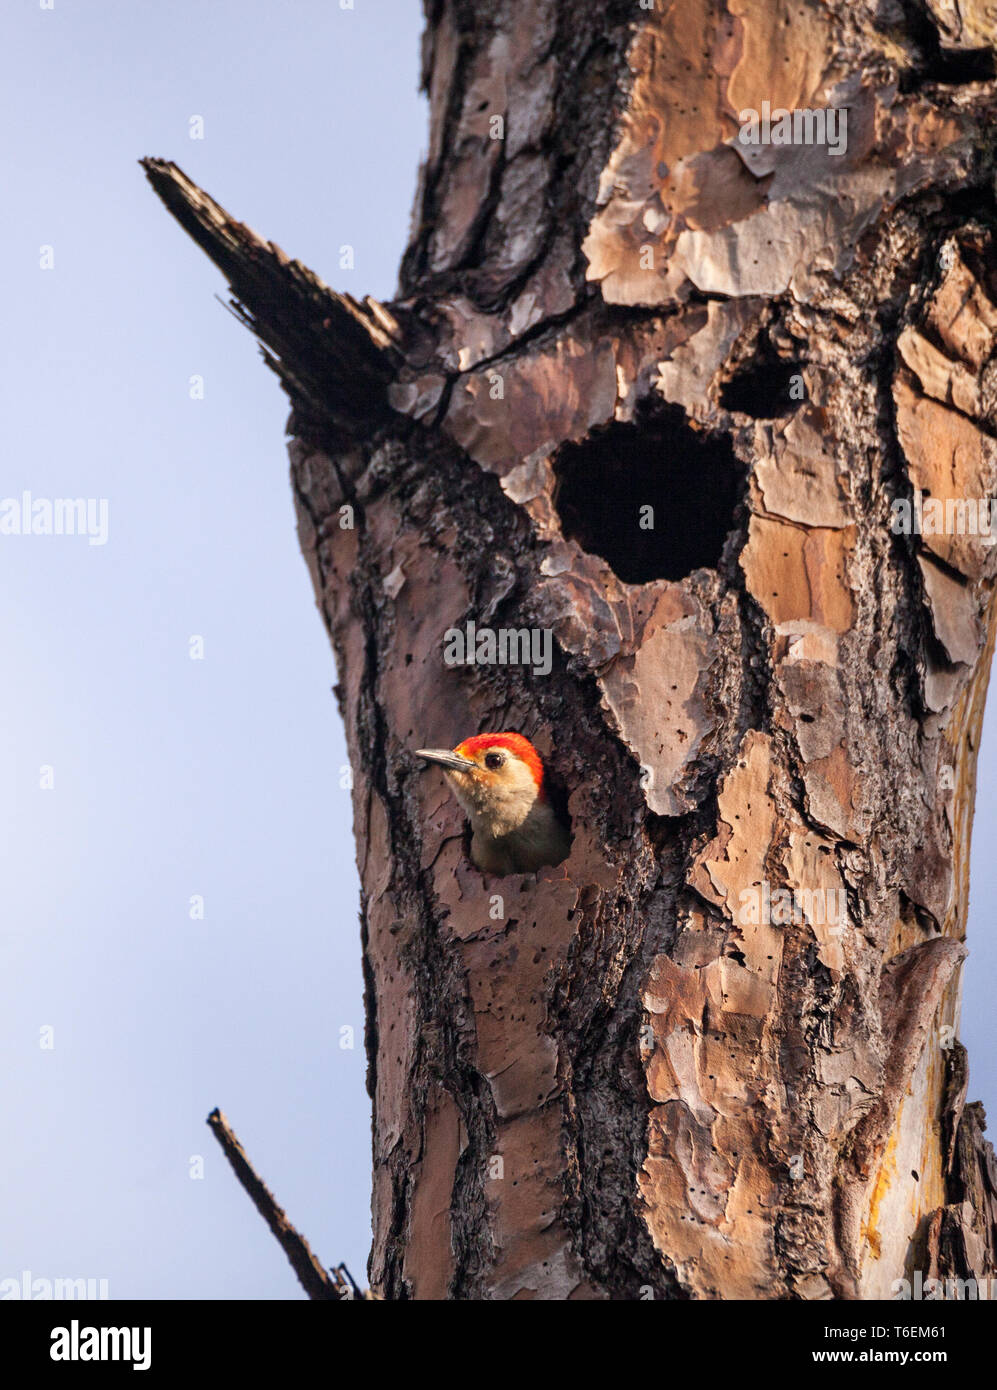 Red-bellied woodpecker bird Melanerpes carolinus in a nest hole - Stock Image